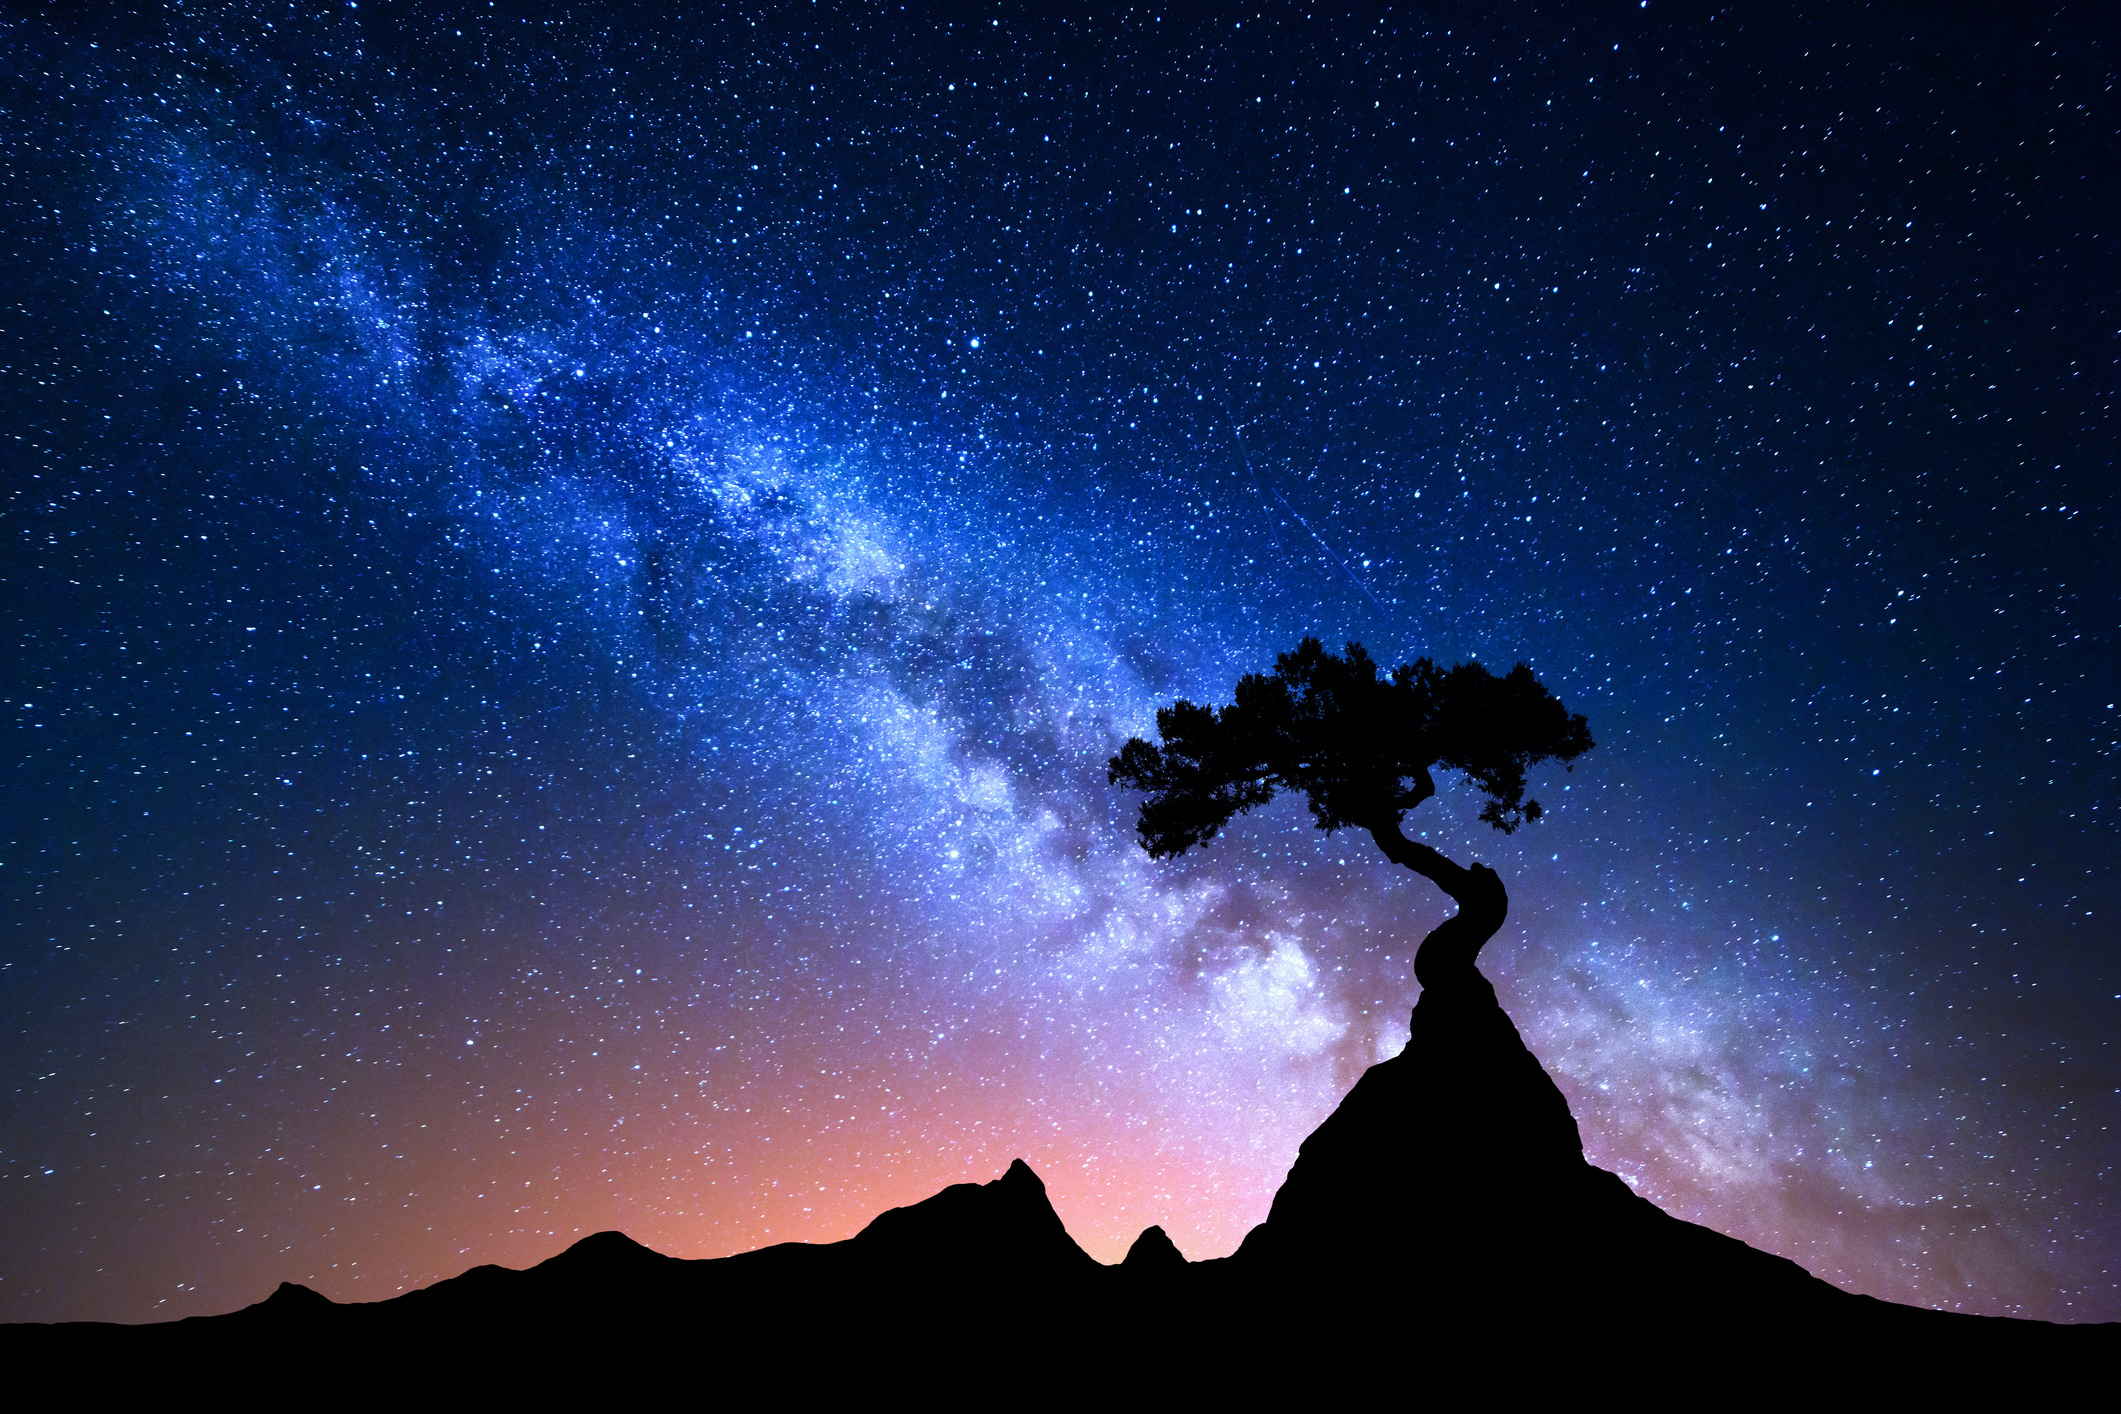 Quick Tips for Planning Your Astrophotography Photo Shoot